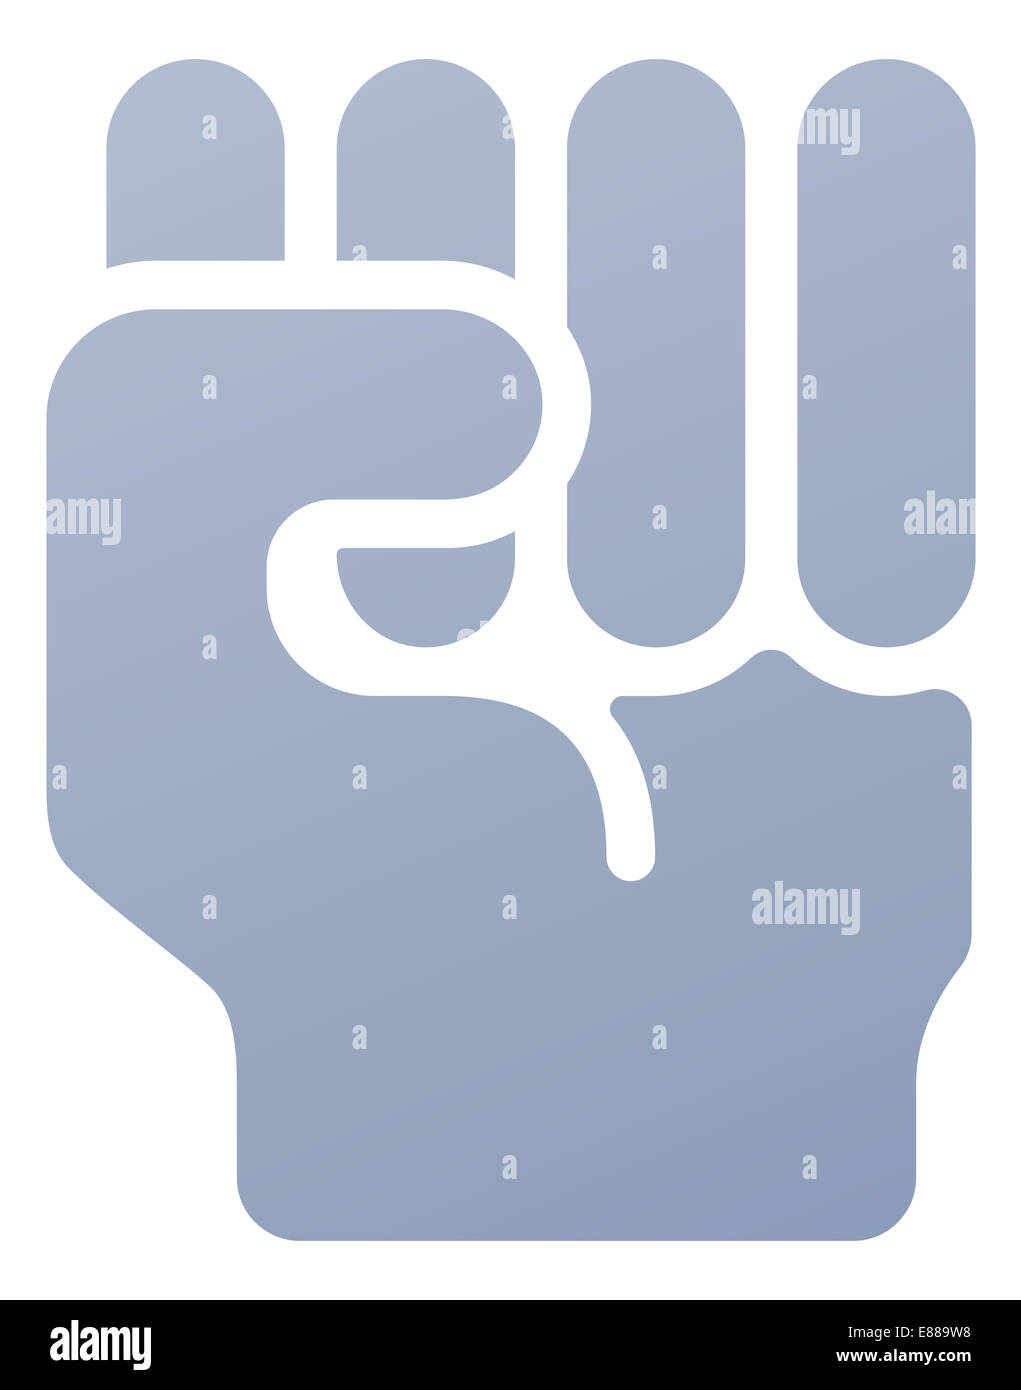 Fist icon illustration of a hand in in clench fist gesture - Stock Image